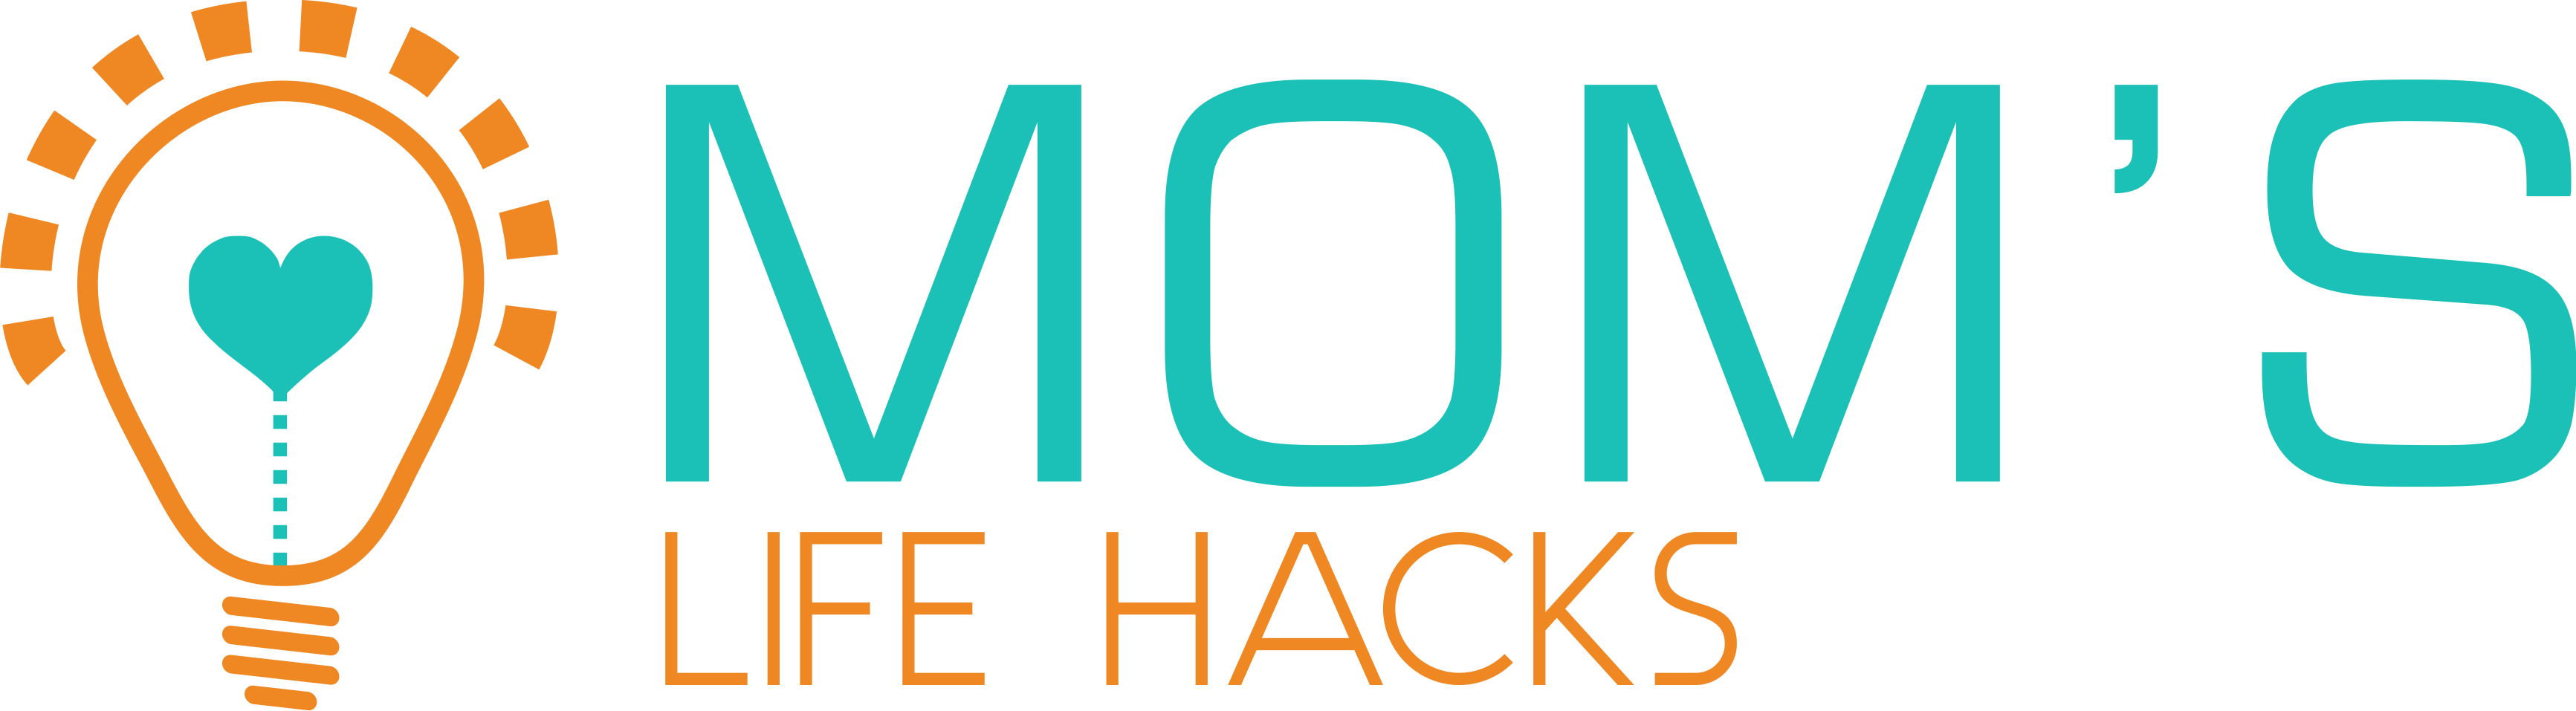 Life Hacks For Moms Life Hacks For Moms The Number One Mom Blog For Busy Life Hacks